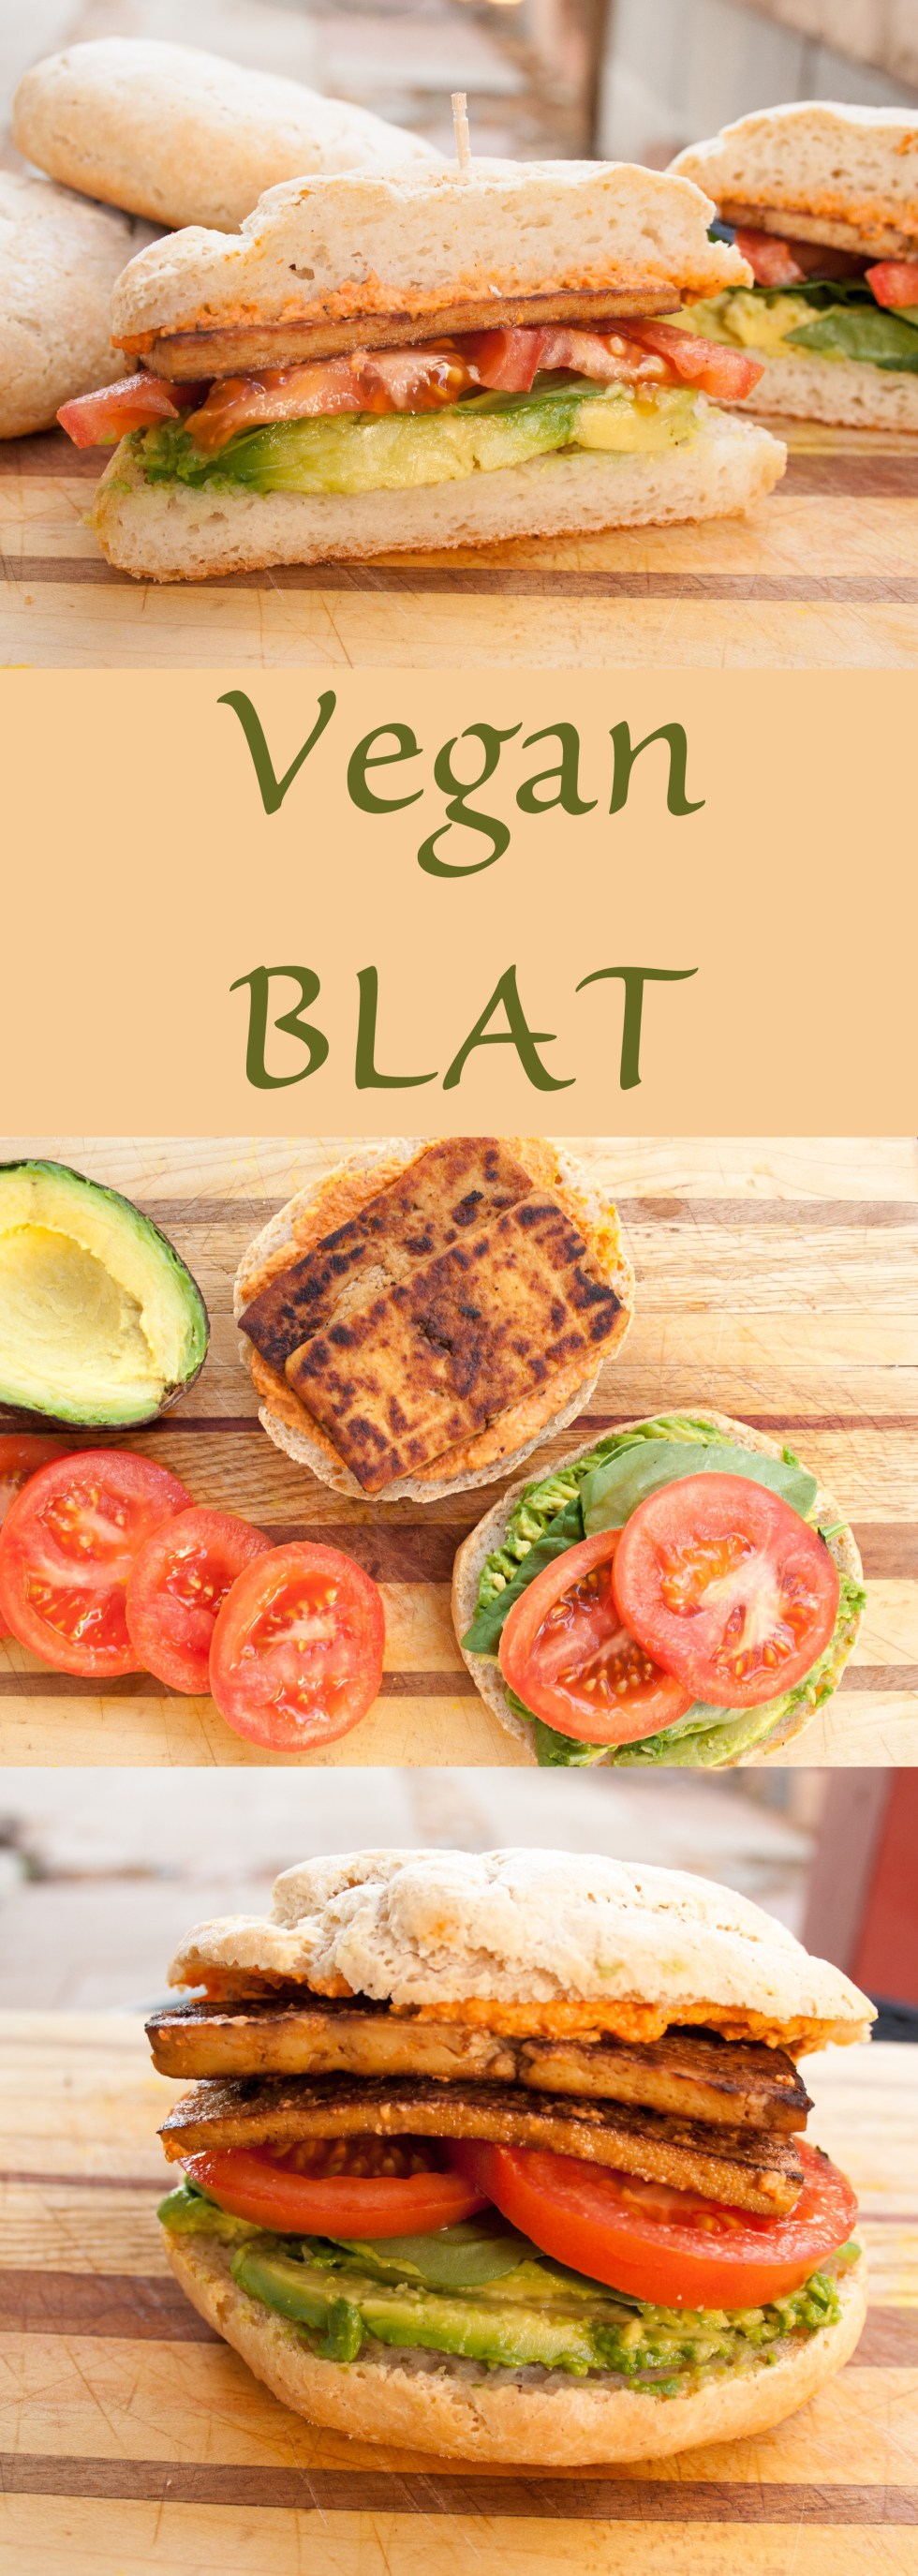 Vegan BLAT - This vegan gluten free sandwich is so good, you won't miss the bacon! It has a sweet and savory roasted red pepper spread to compliment the savory tofu bacon.